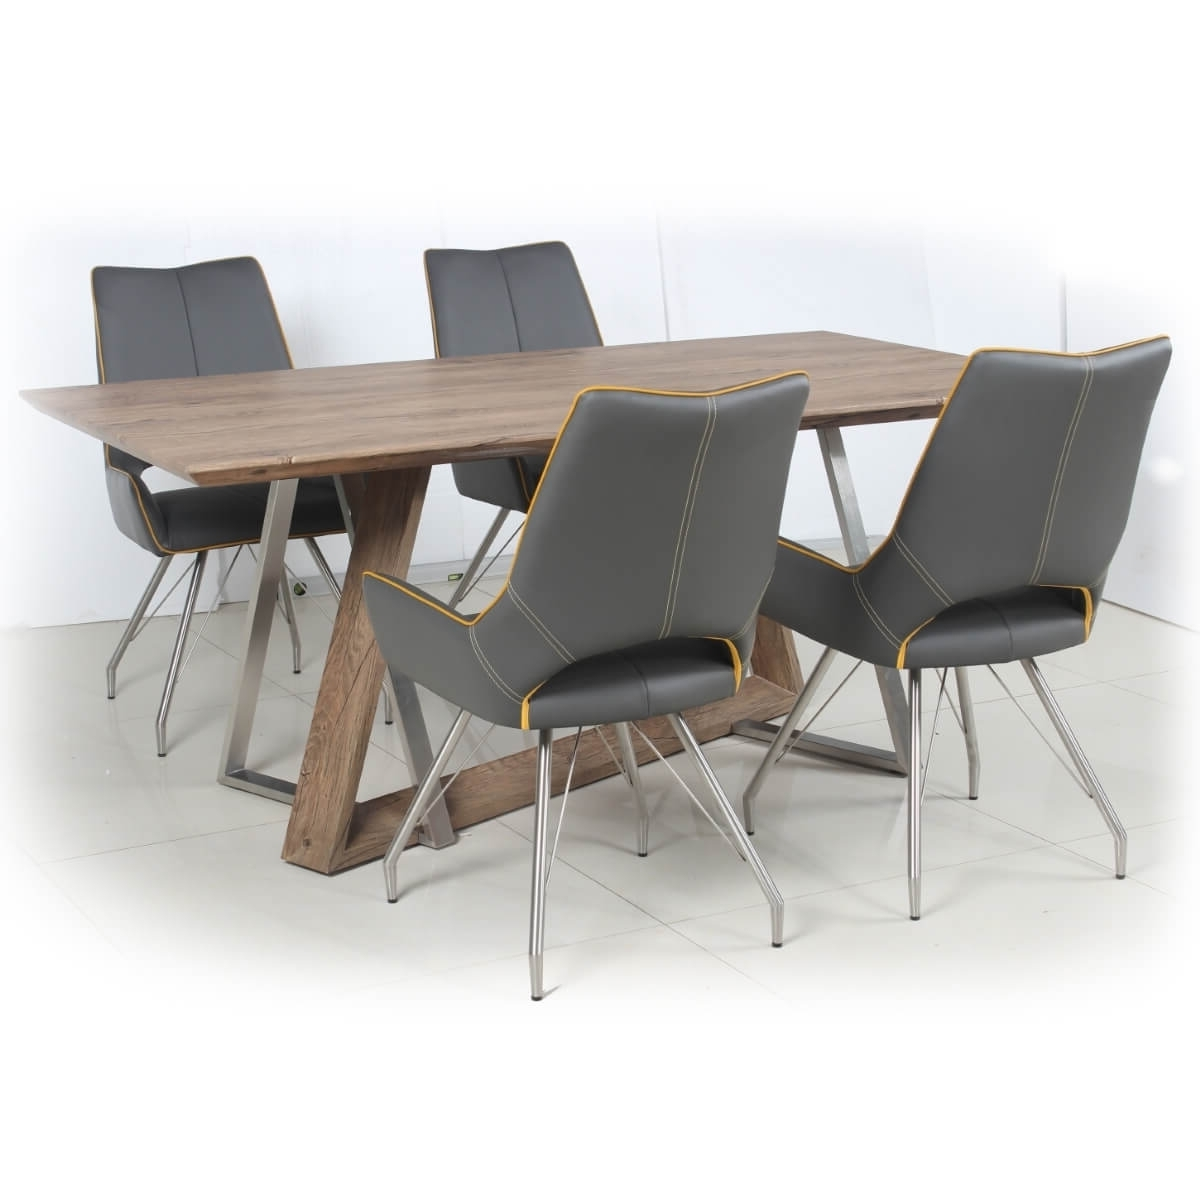 Grey Dining Chairs Within Well Known Dining Set – Industrial Style Wood Dining Table And 4 Grey Dining (Gallery 23 of 25)